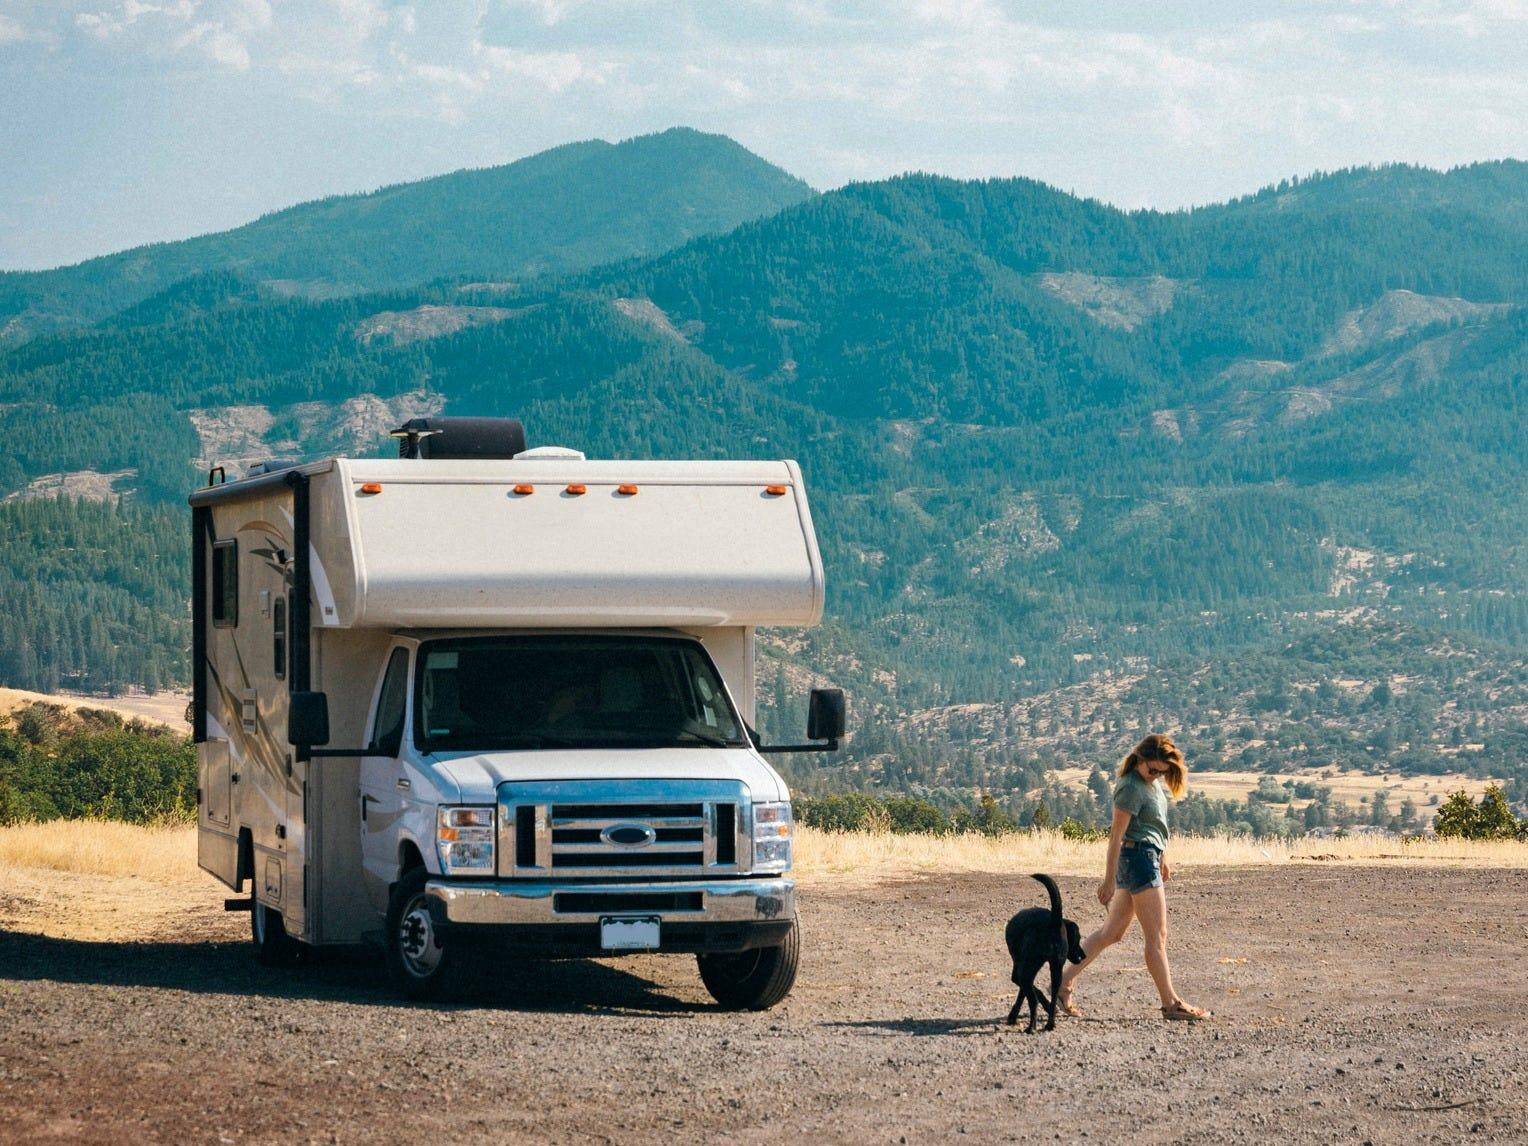 Rv Rental Companies See Spike In Bookings As State Lift Stay At Home Business Insider